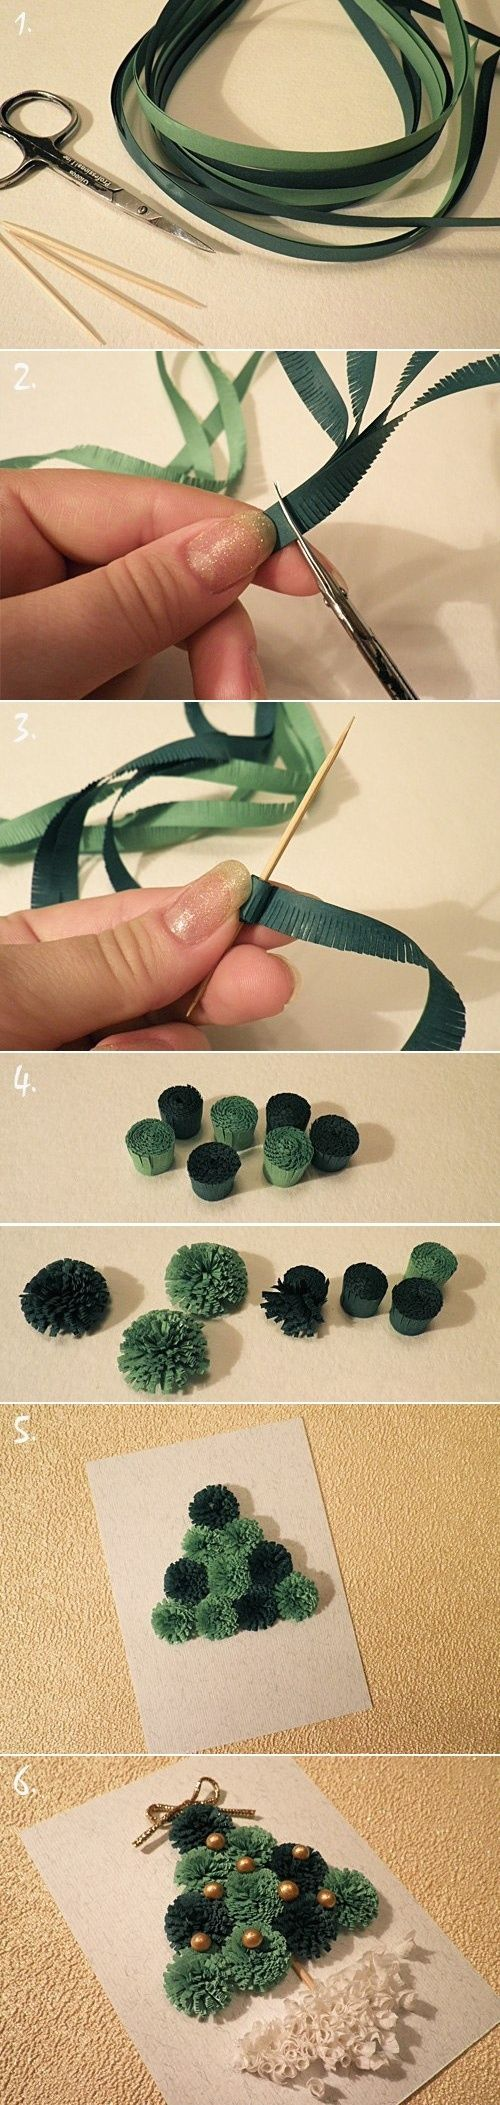 Diy Quilled Christmas Tree